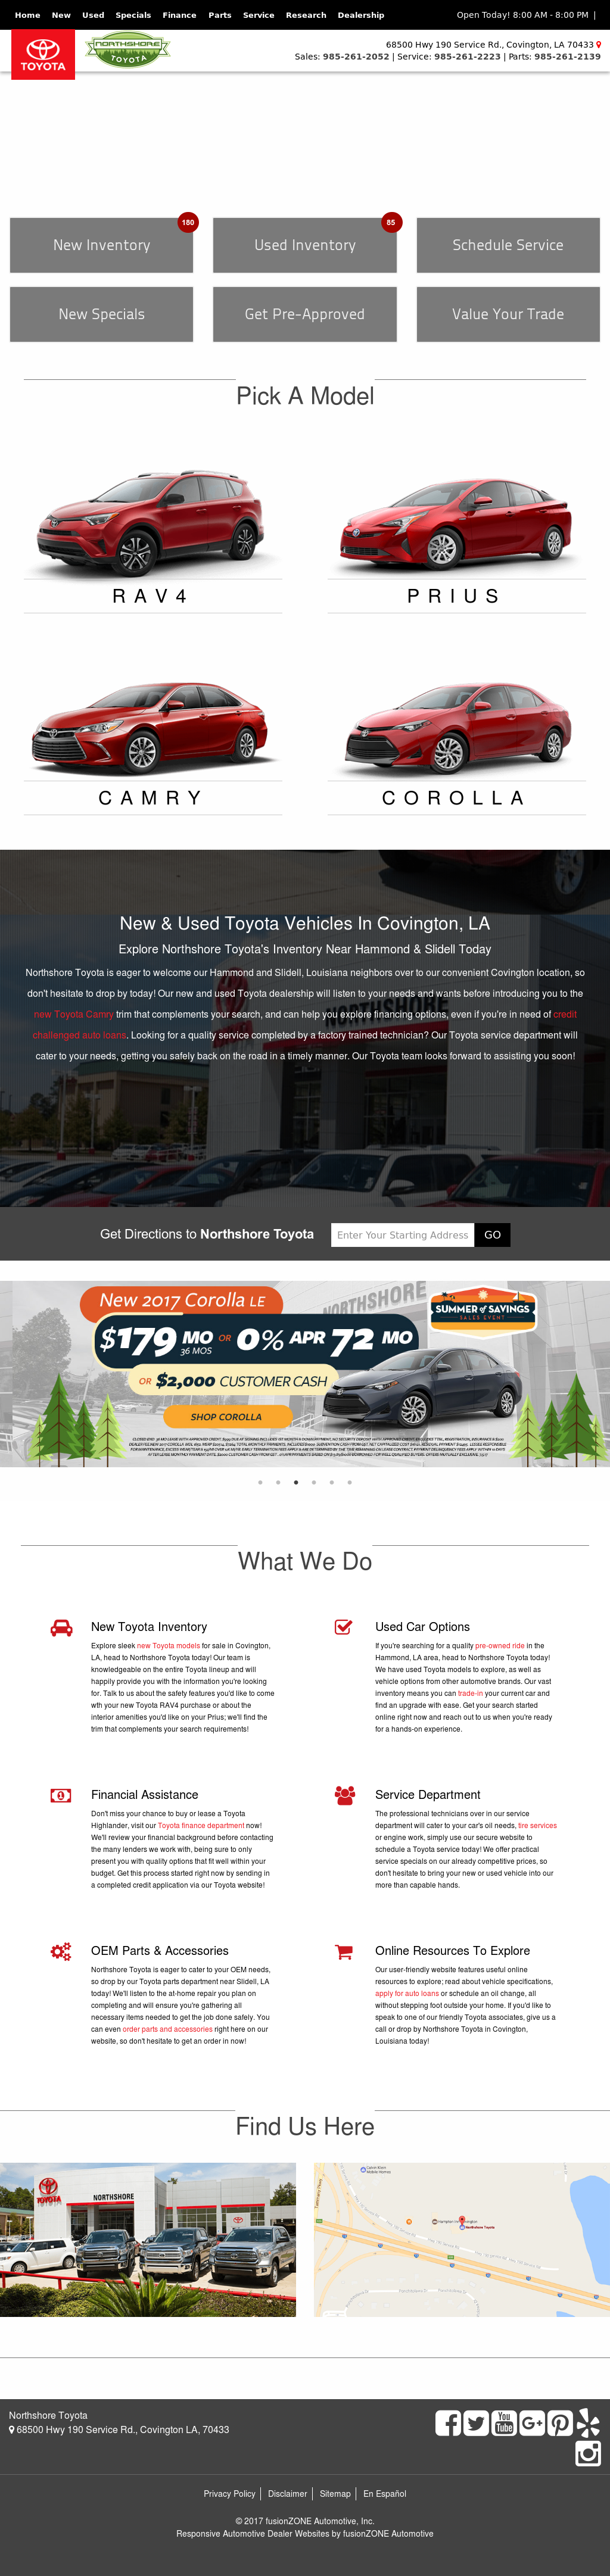 Northshore Toyota petitors Revenue and Employees Owler pany